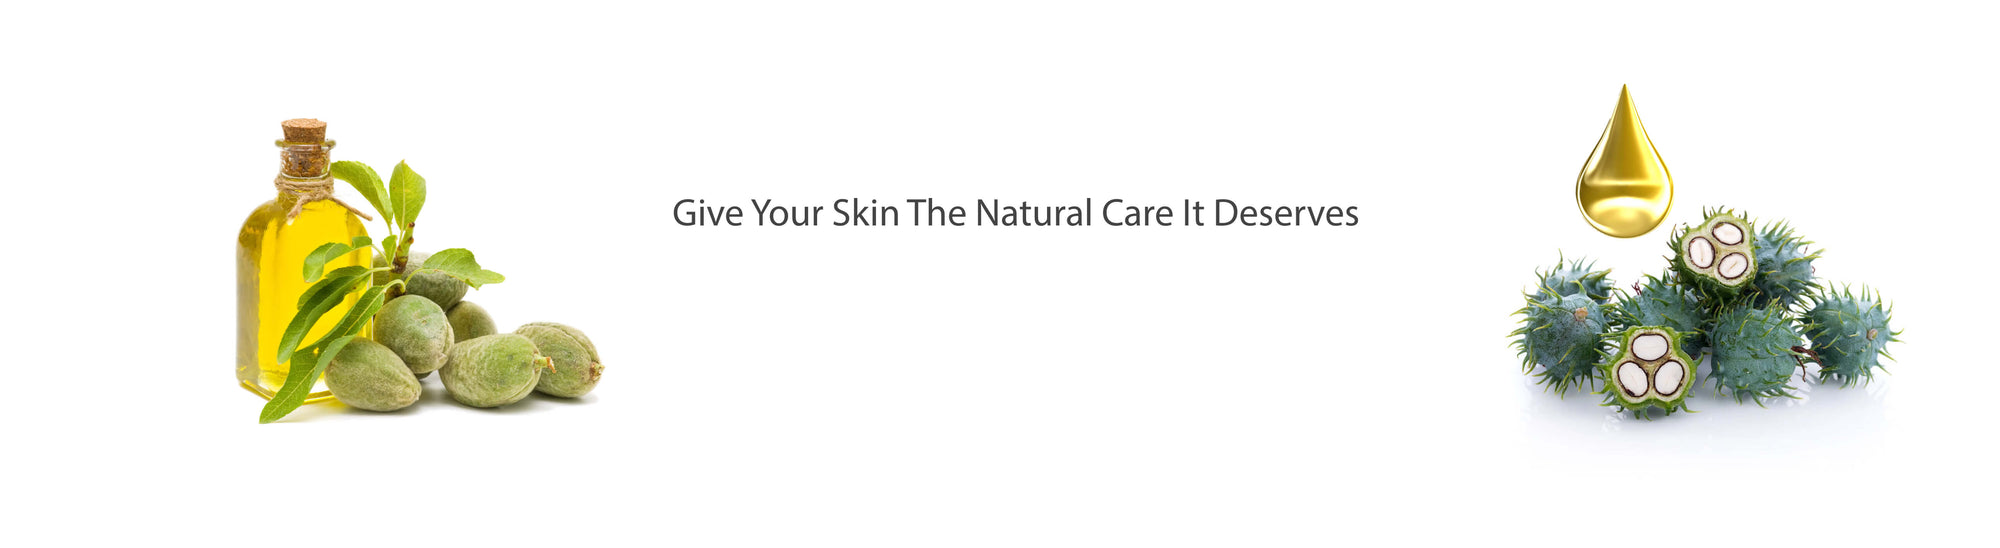 Organic Skin Care by Dr. Fedorenko True Organics